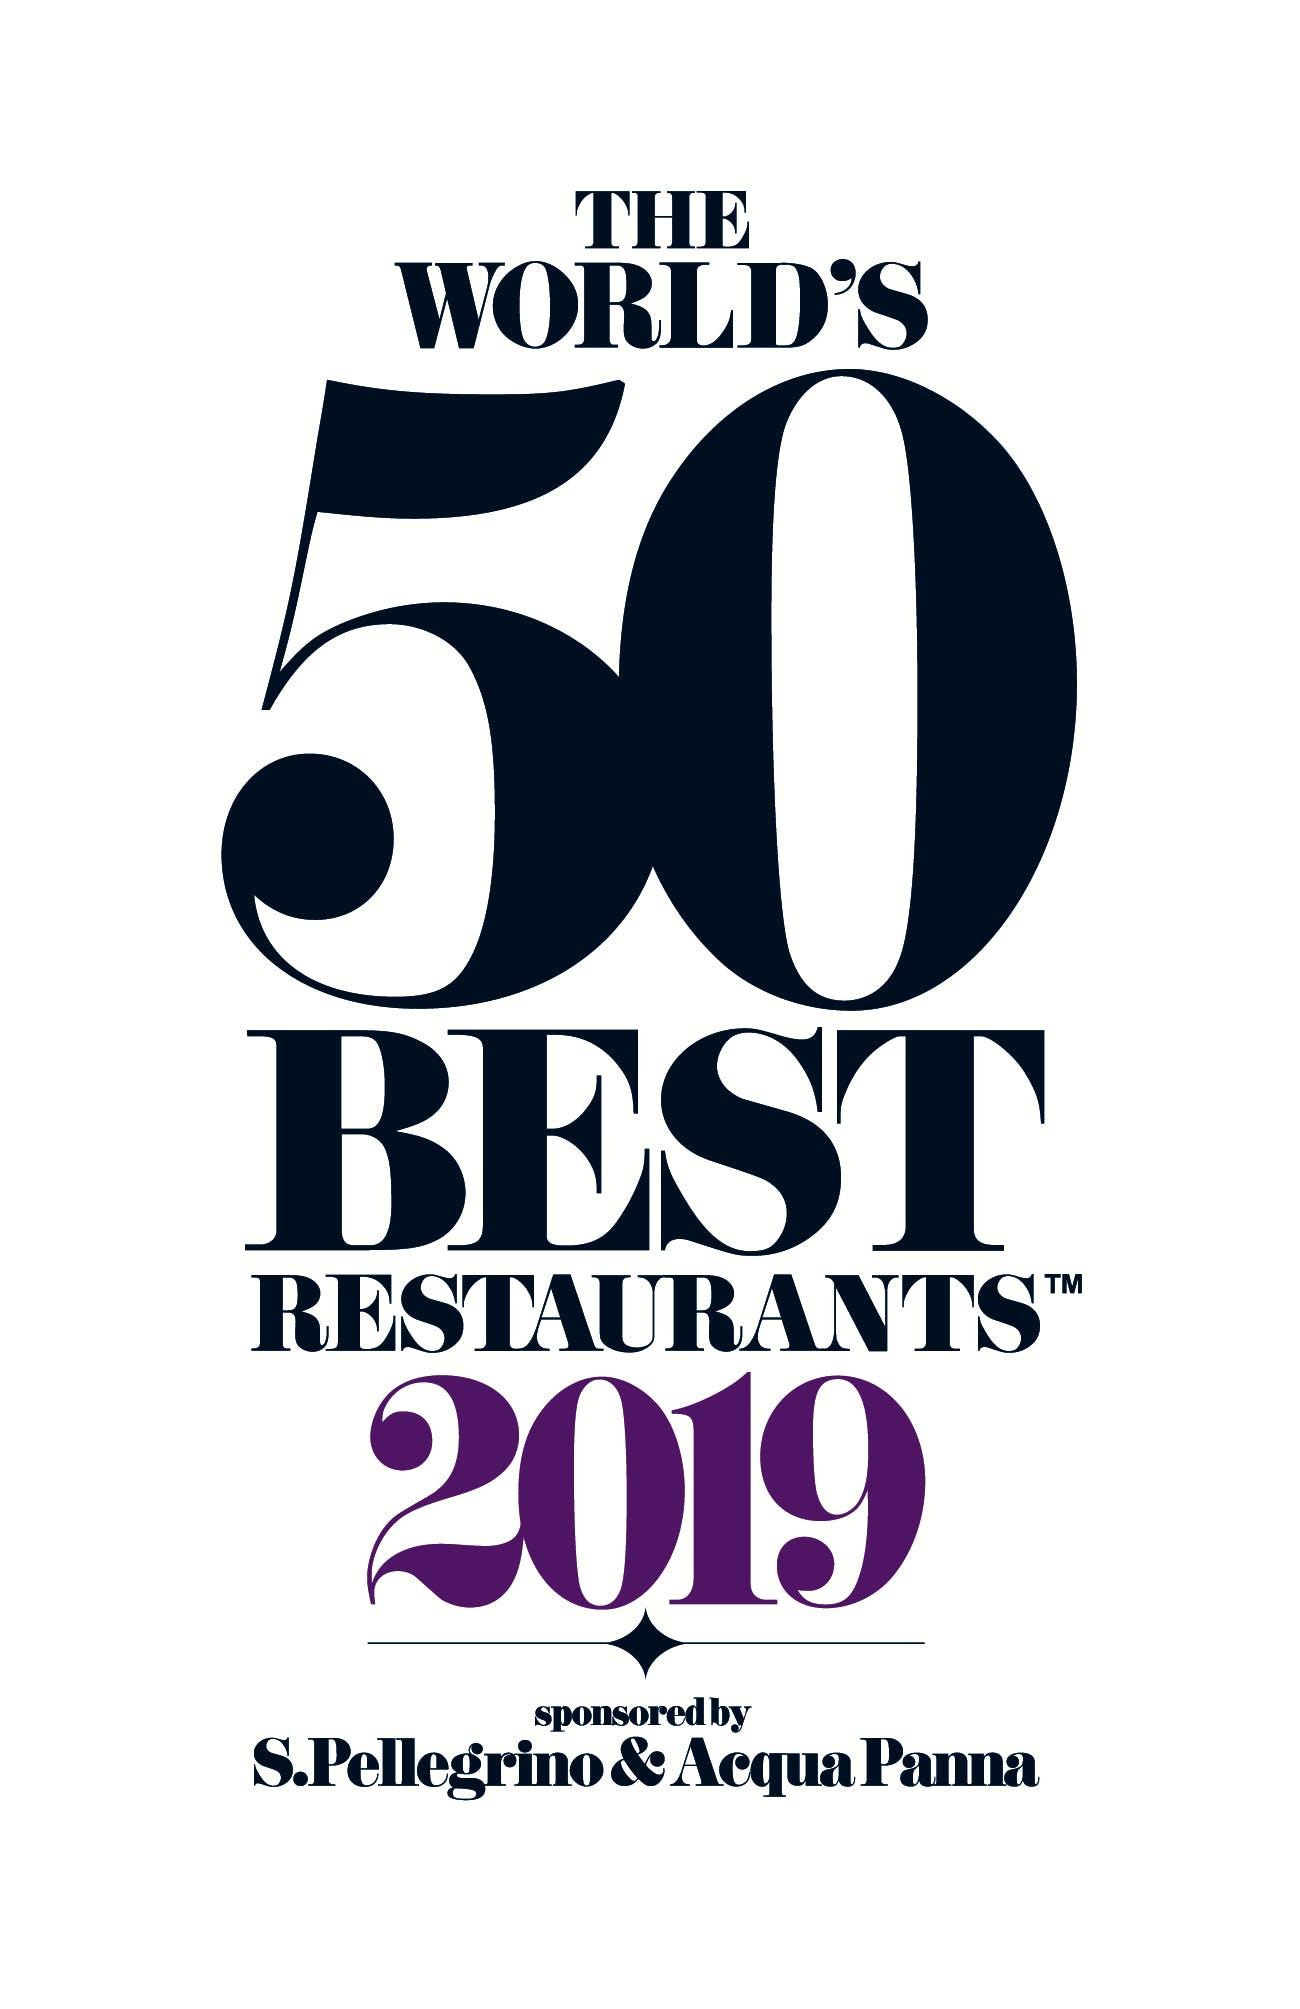 Image of 50Best World TM 2019 PRIMARY 2 in Dekton® by Cosentino: Official Sponsor of The World's 50 Best Restaurants 2019 - Cosentino